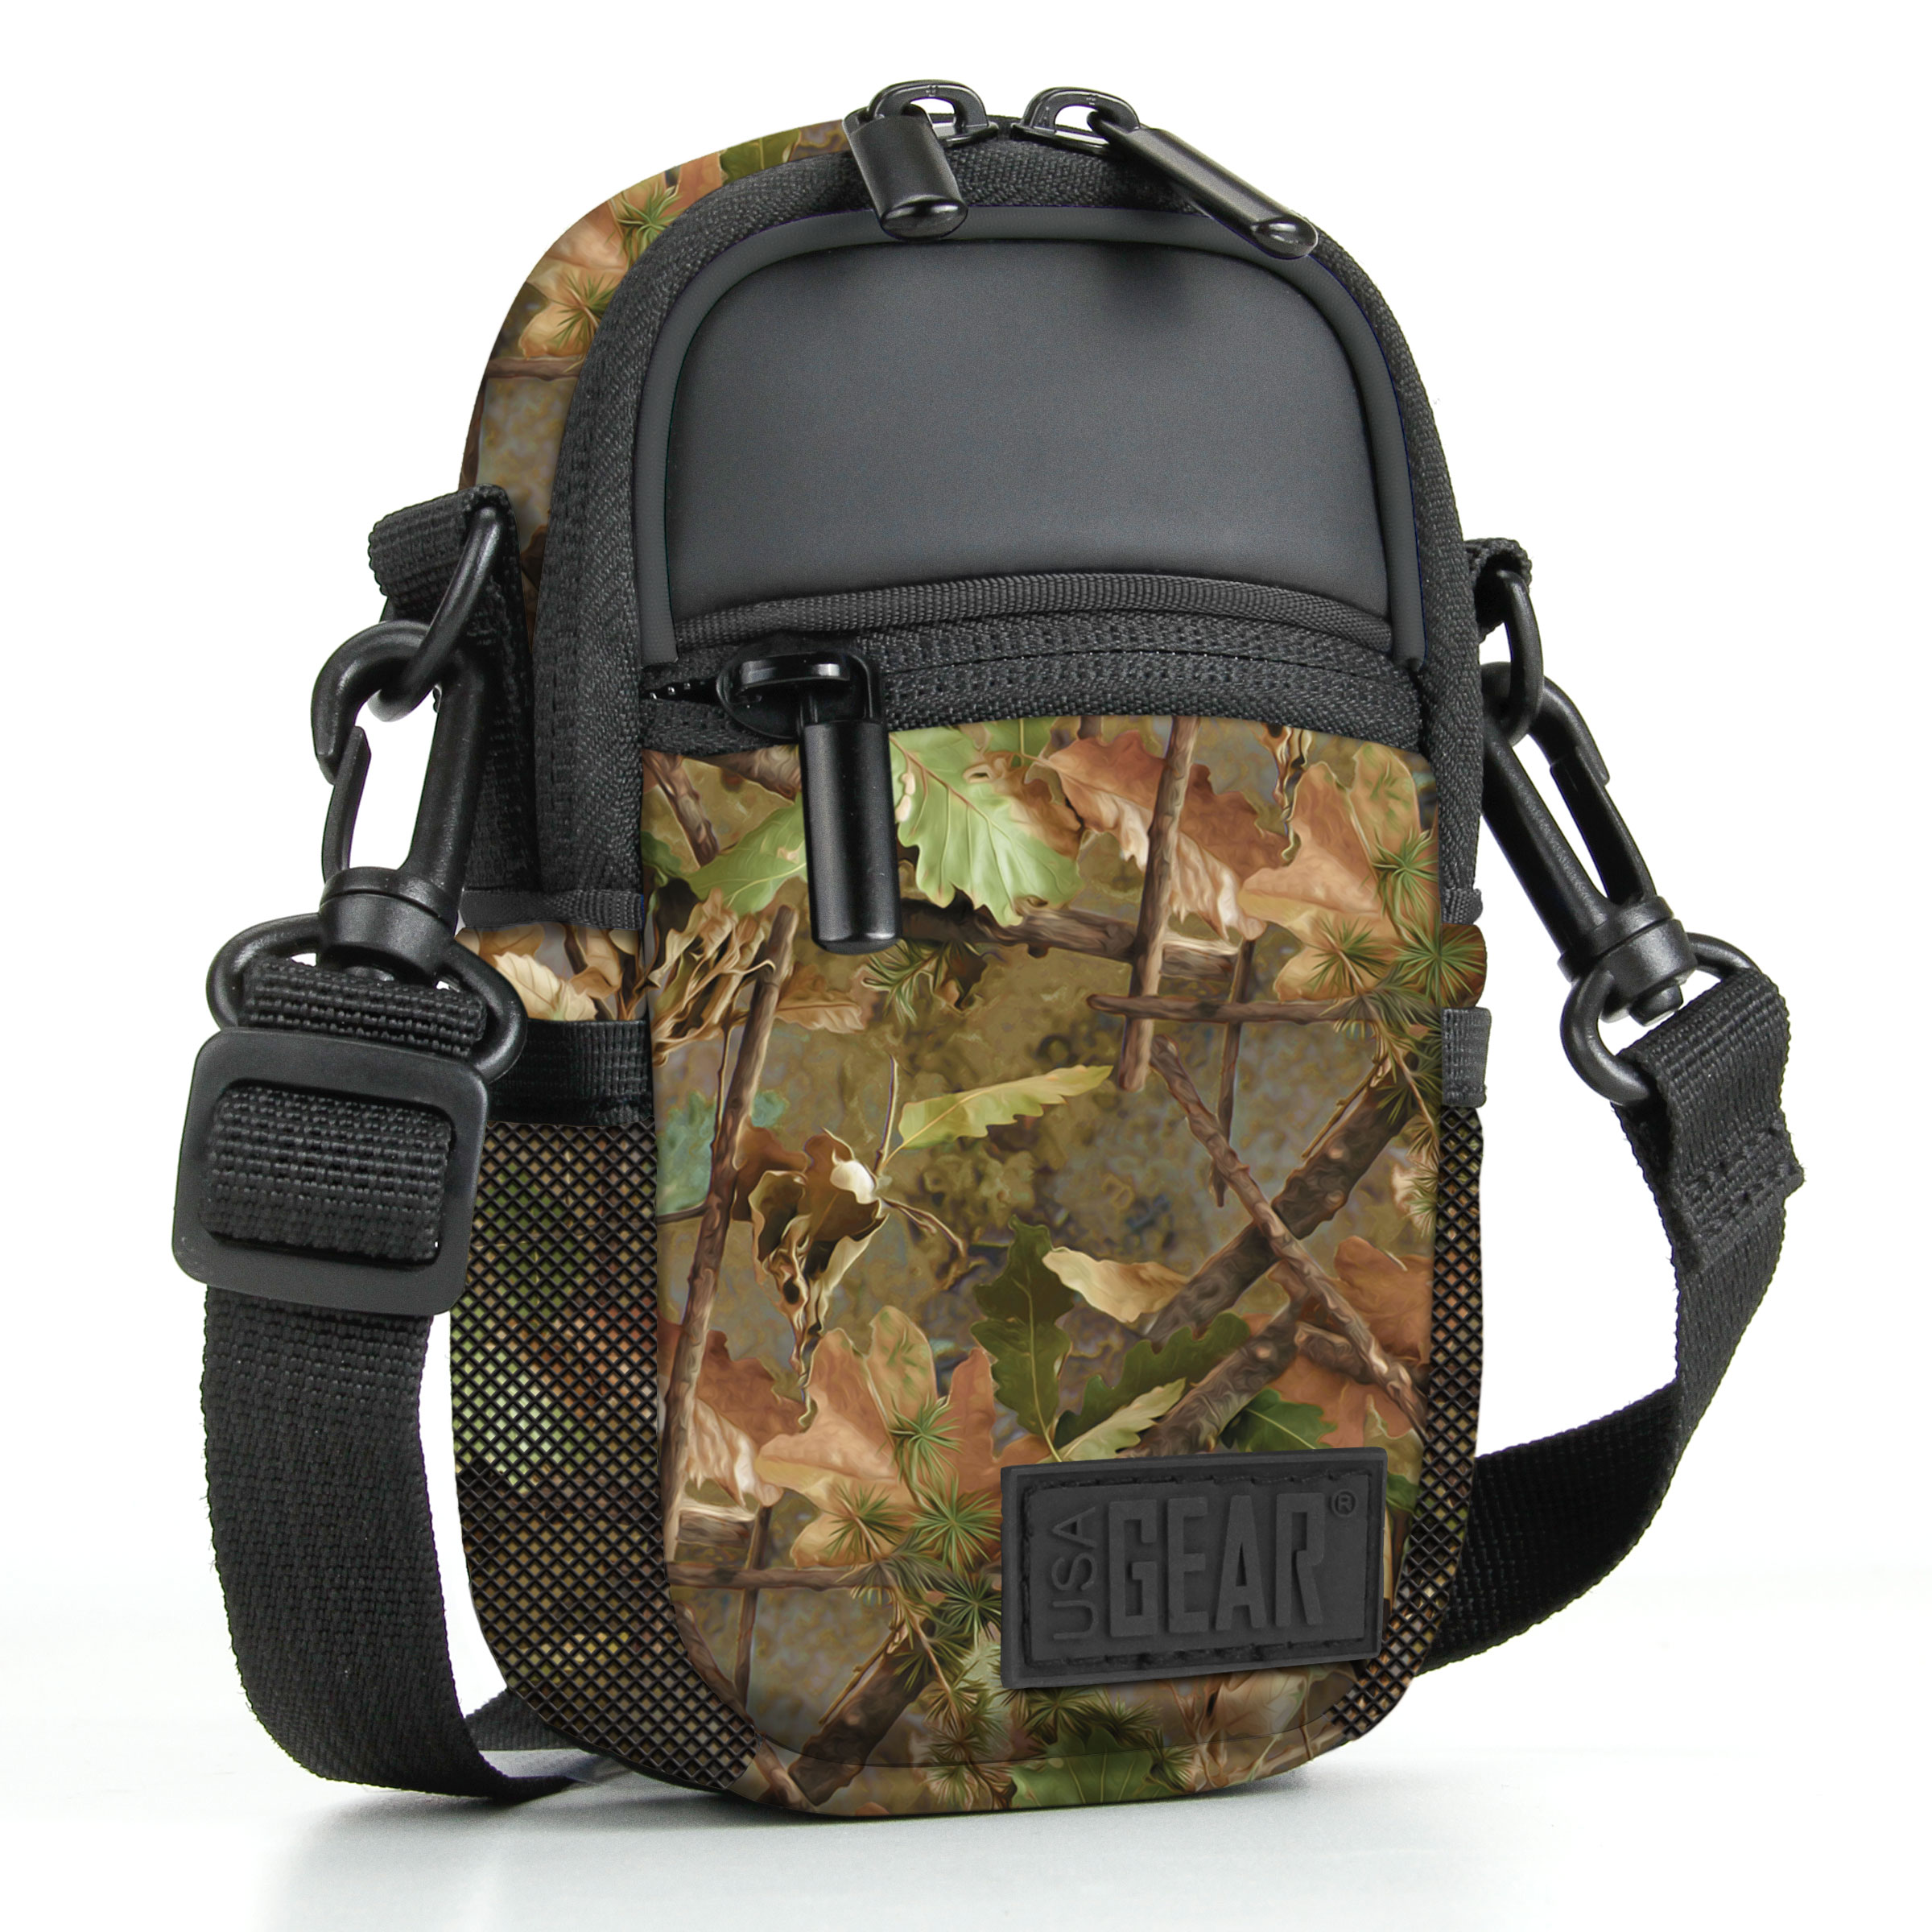 Compact Point and Shoot Camera Sling Bag by USA Gear with Rain Cover and Shoulder Sling Strap 0